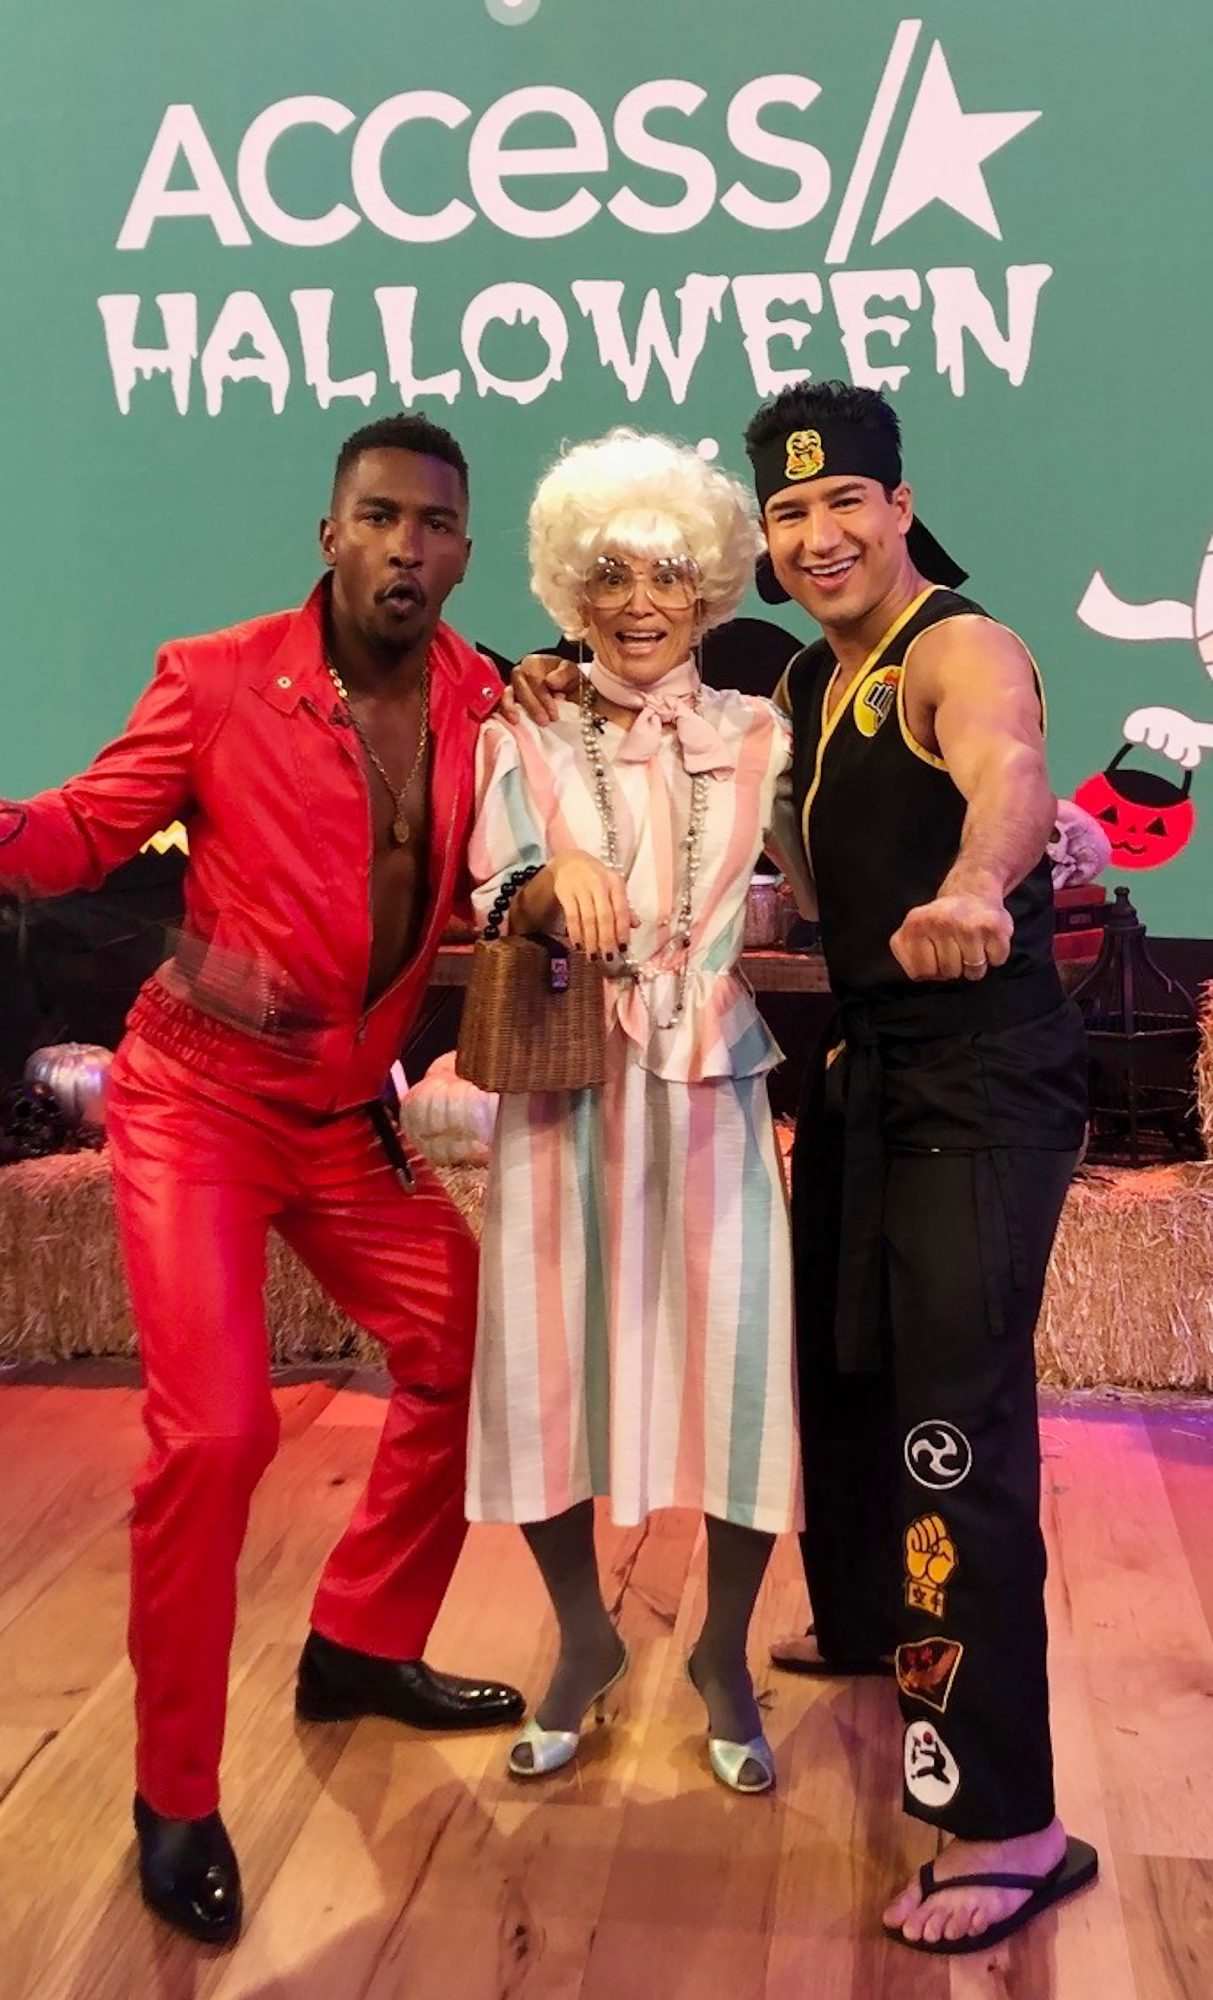 Access Daily's Mario Lopez, Kit Hoover and Scott Evans revisit the 80's for Halloween by dressing up Cobra Kai from Karate Kit, Sophia from The Golden Girls and Eddie Murphy in Delirious.